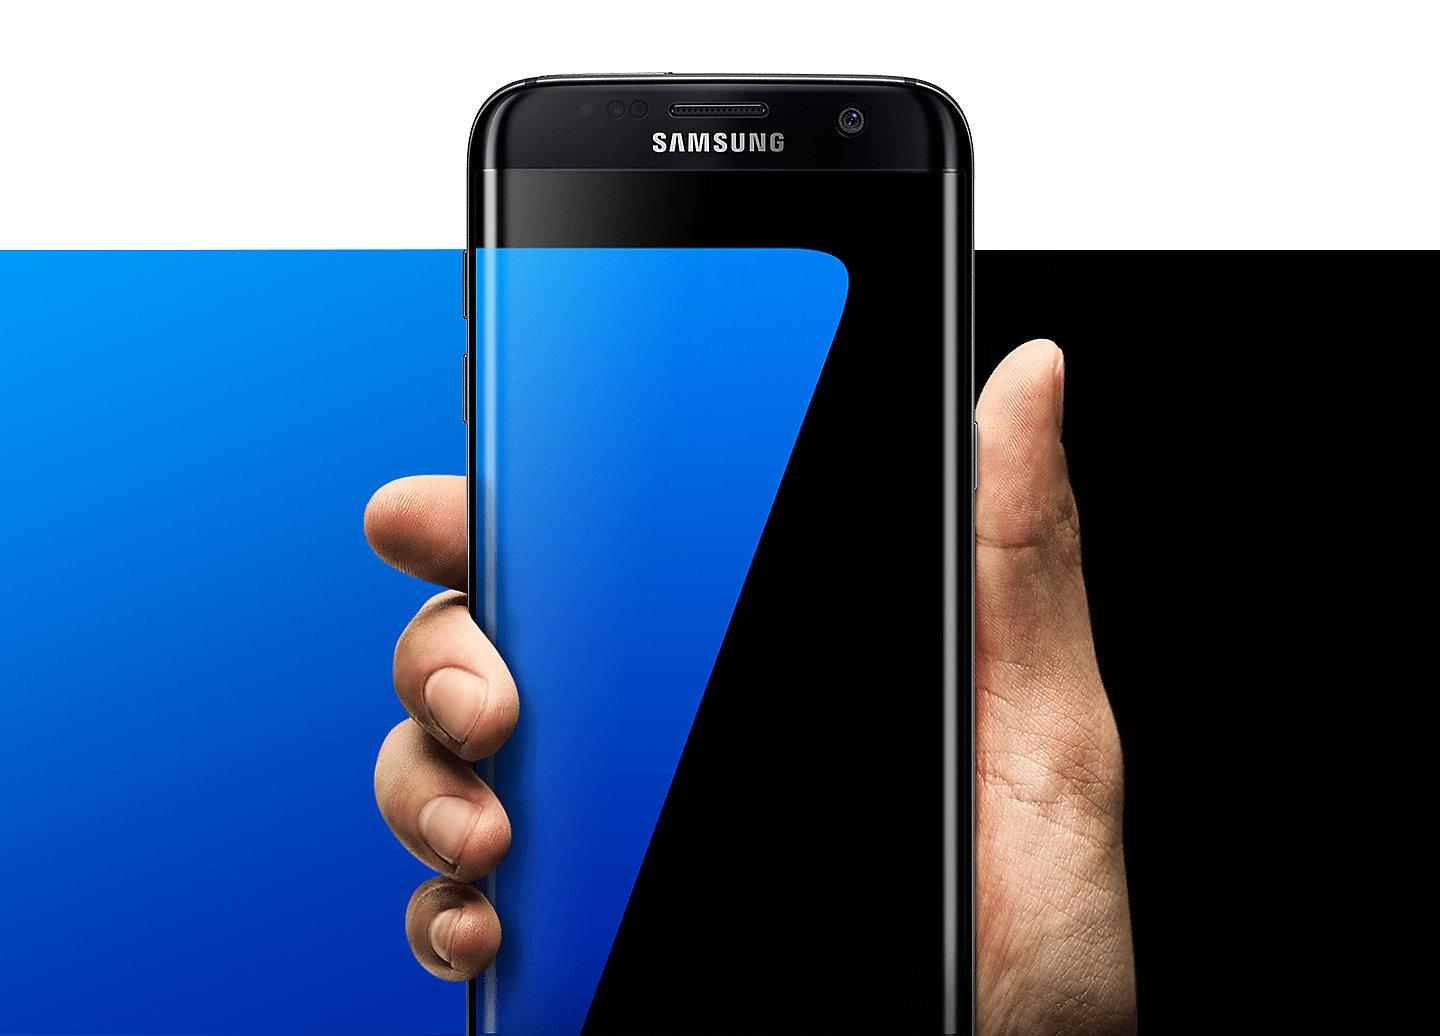 Samsung Galaxy S7 Edge Blue Dual Sim Price In Pakistan 32 Gb Smartphone Coral It Brings A New Way Of Thinking About What Phone Can Do You Defined The Possibilities And We Redefined